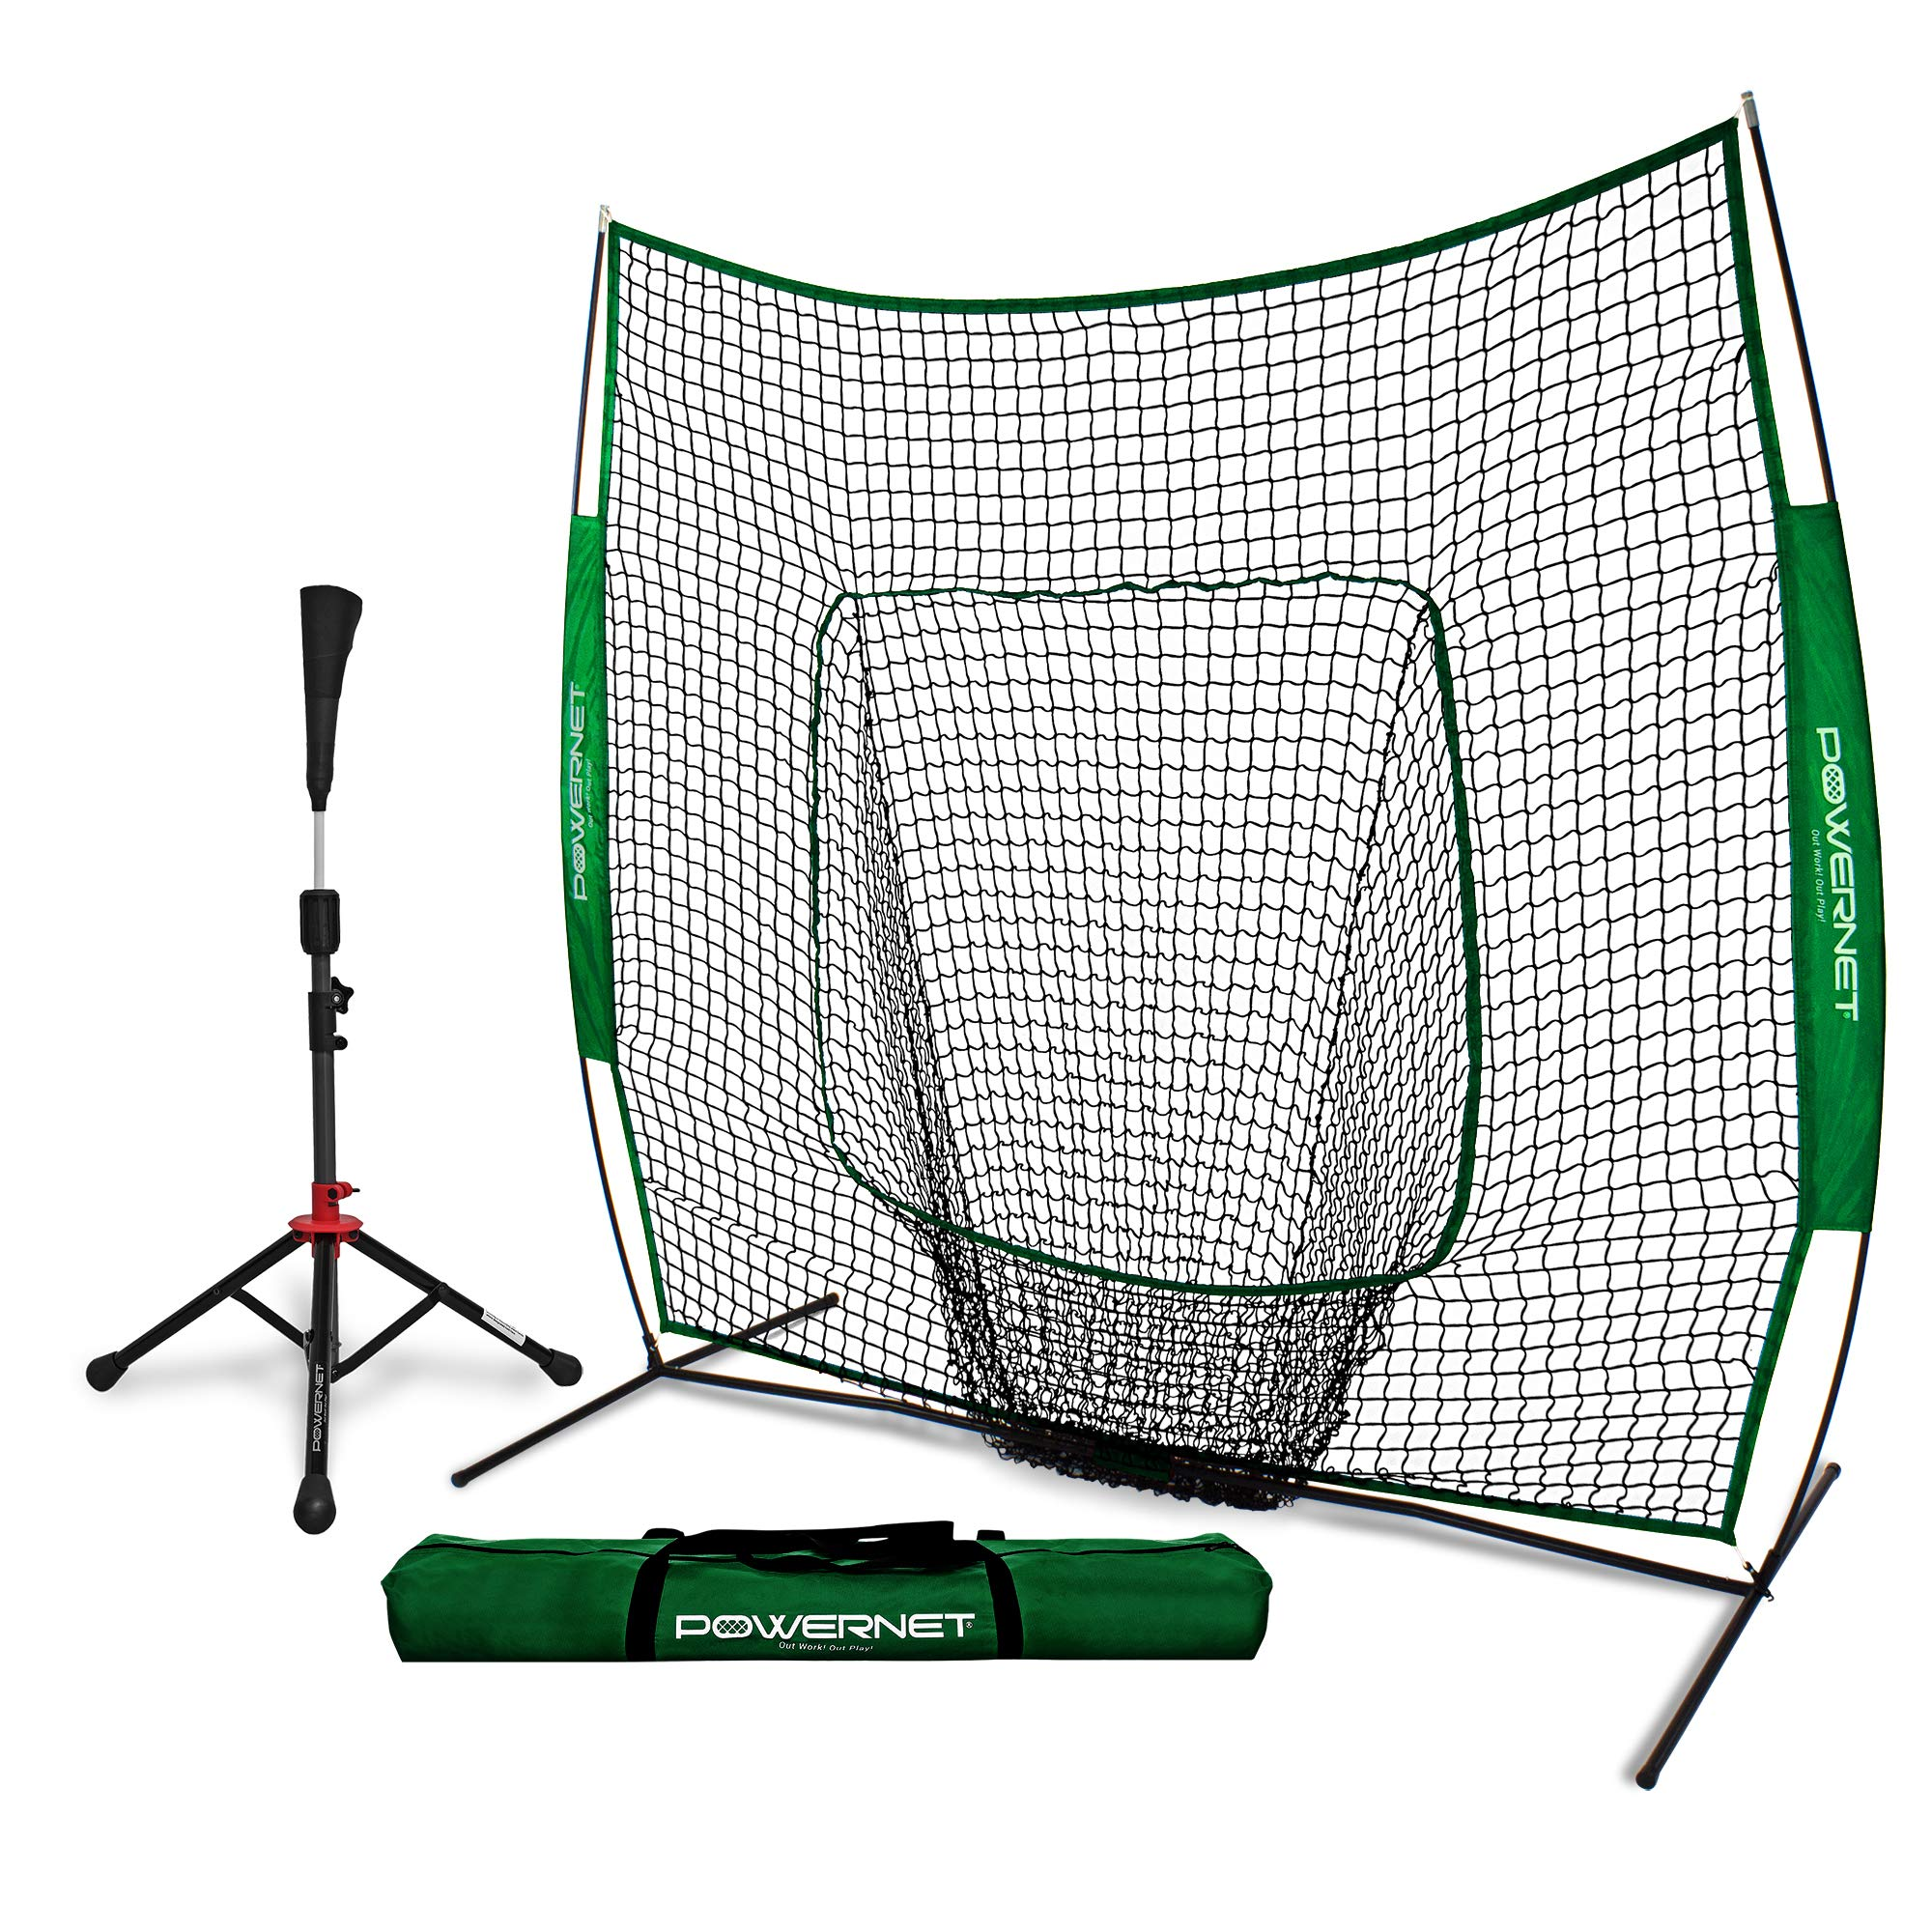 PowerNet Baseball Softball Practice Net 7x7 with Deluxe Tee (Green) | Practice Hitting, Pitching, Batting, Fielding | Portable, Backstop, Training Aid, Bow Frame | Training Equipment Bundle by PowerNet